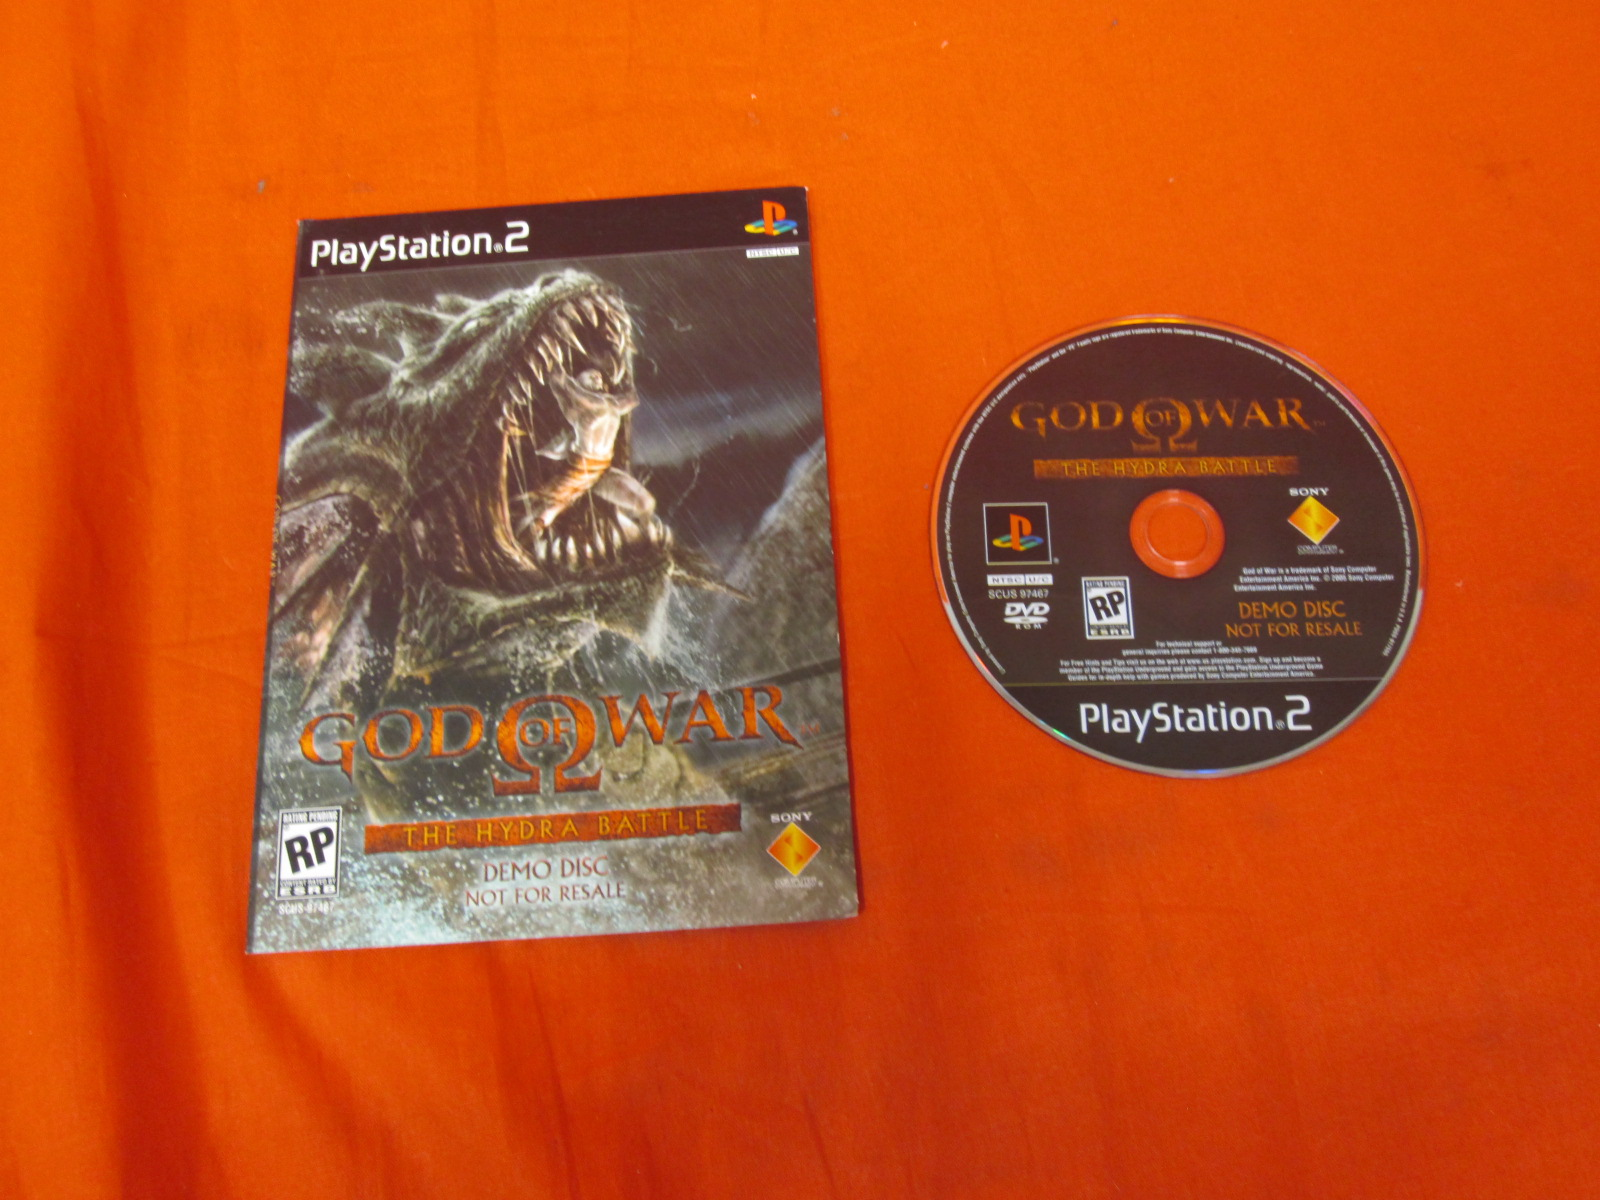 God Of War The Hydra Battle Demo Disc On DVD